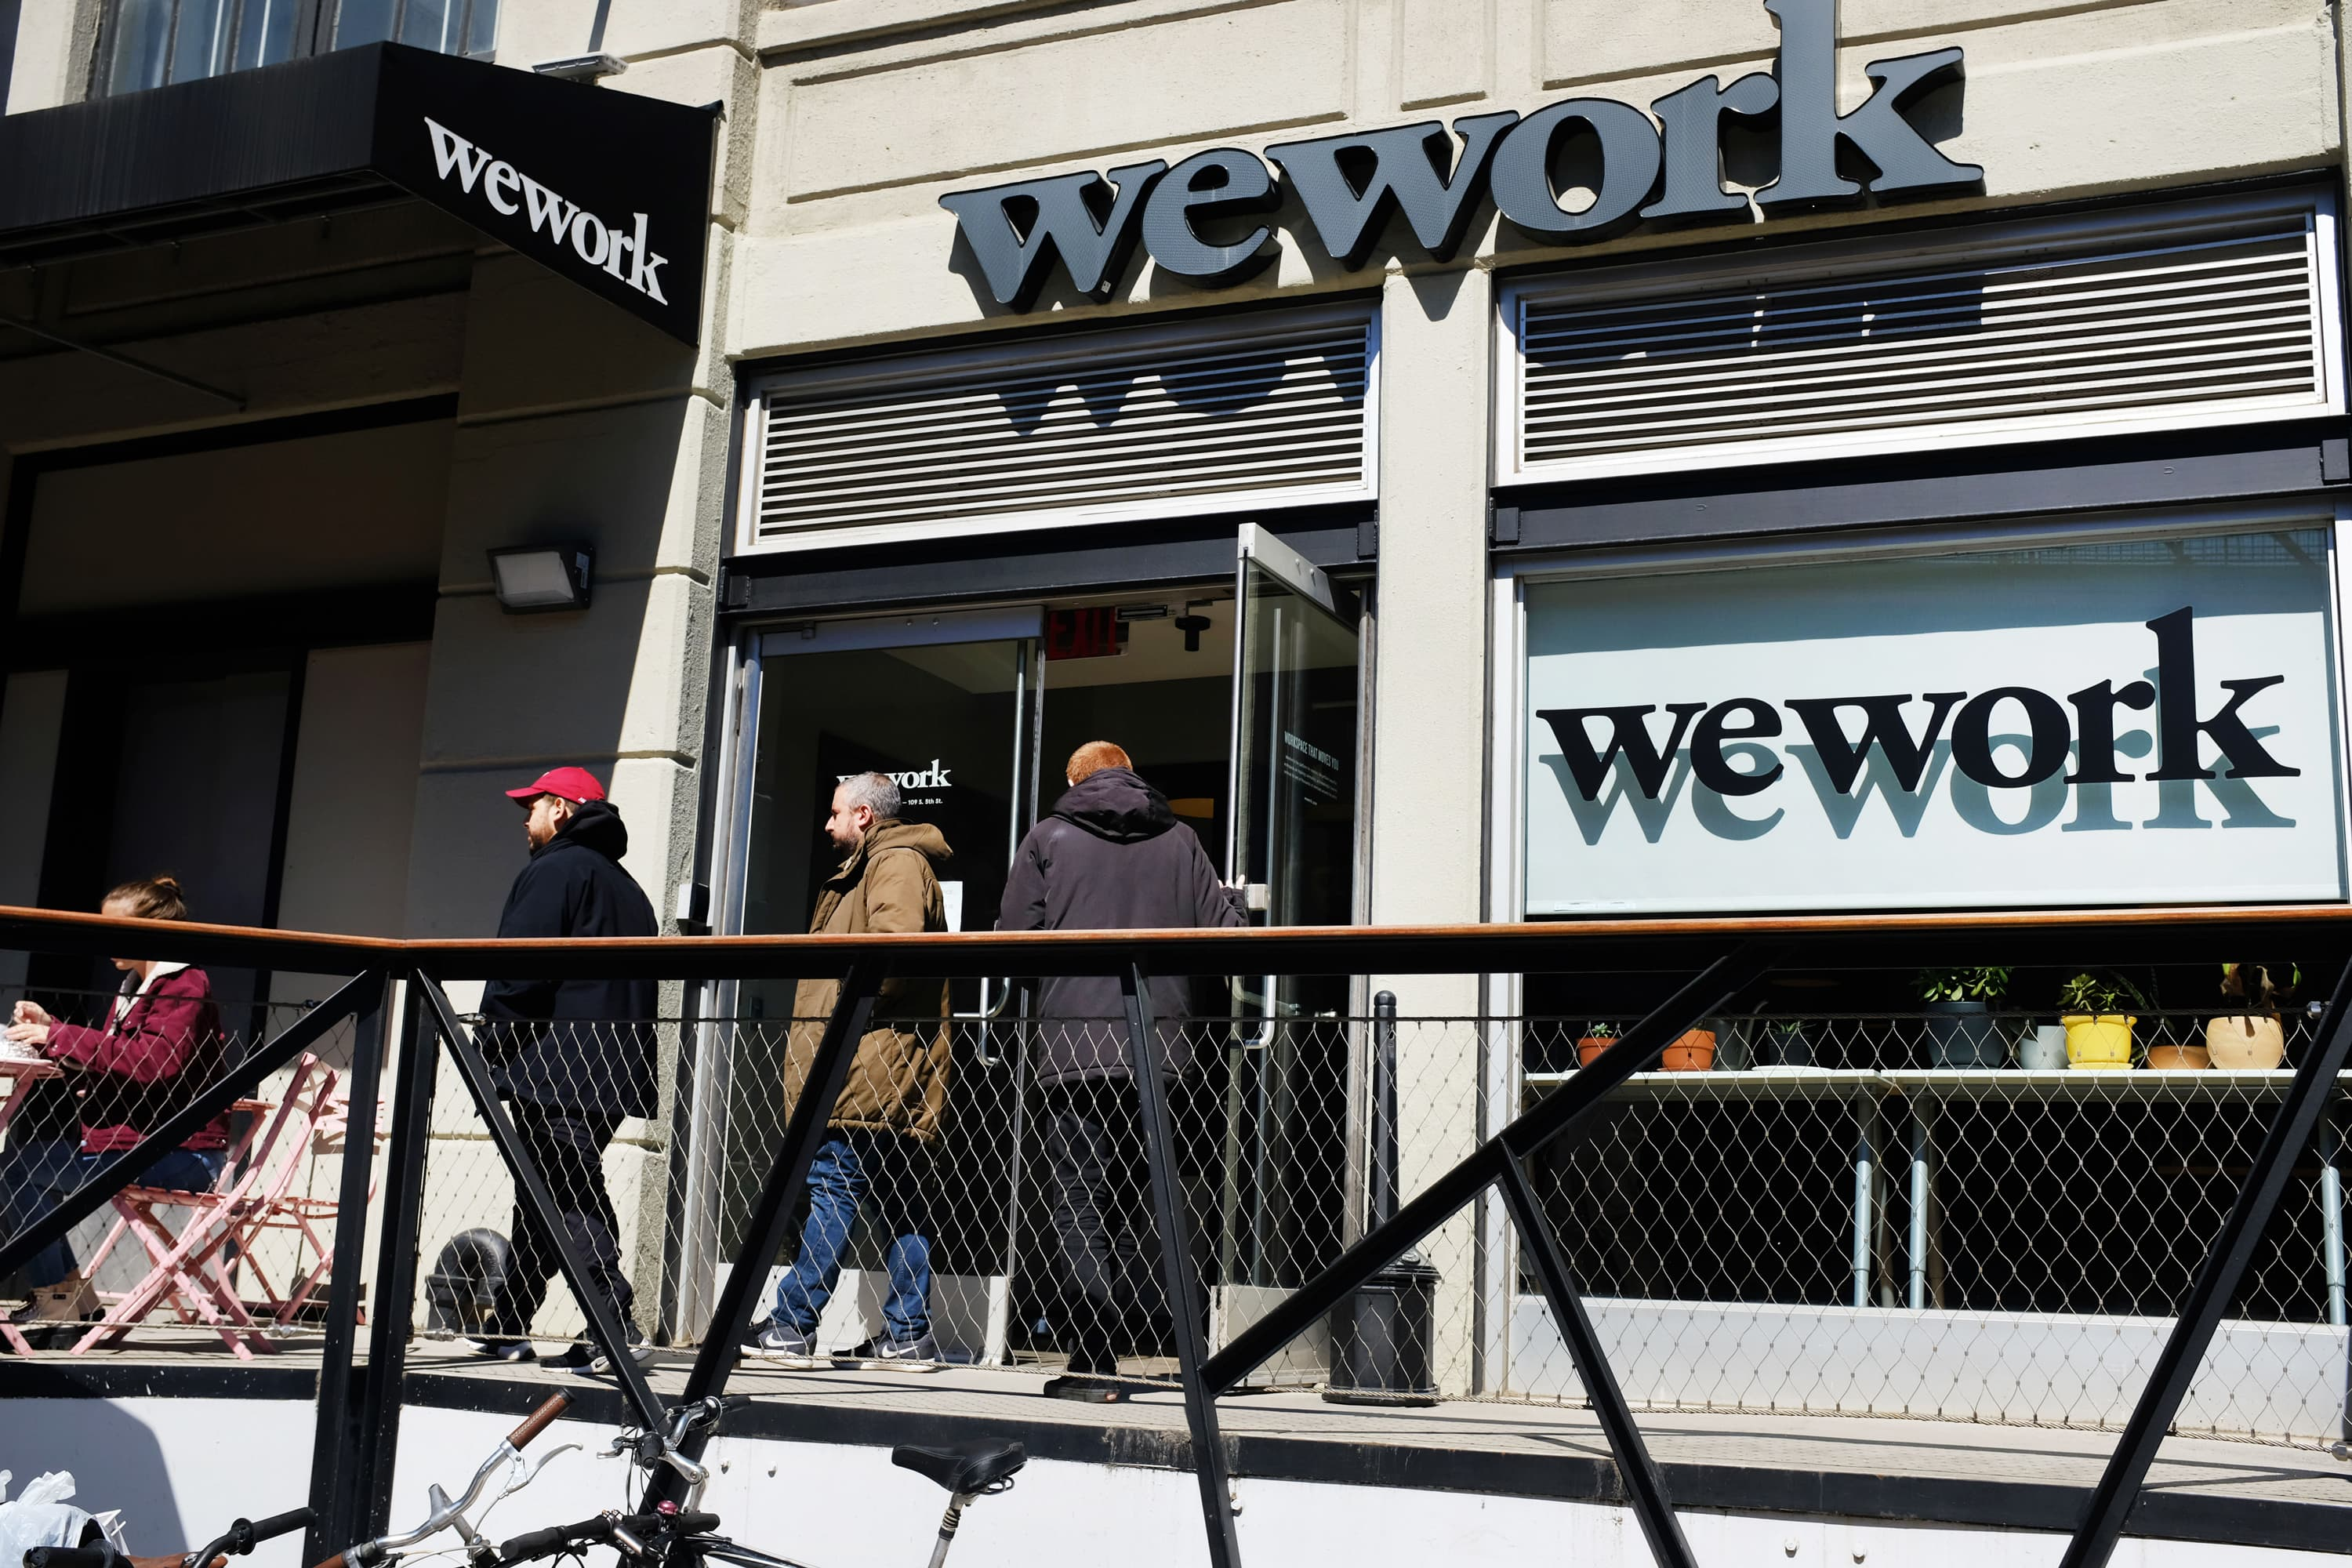 Wework ipo attempt